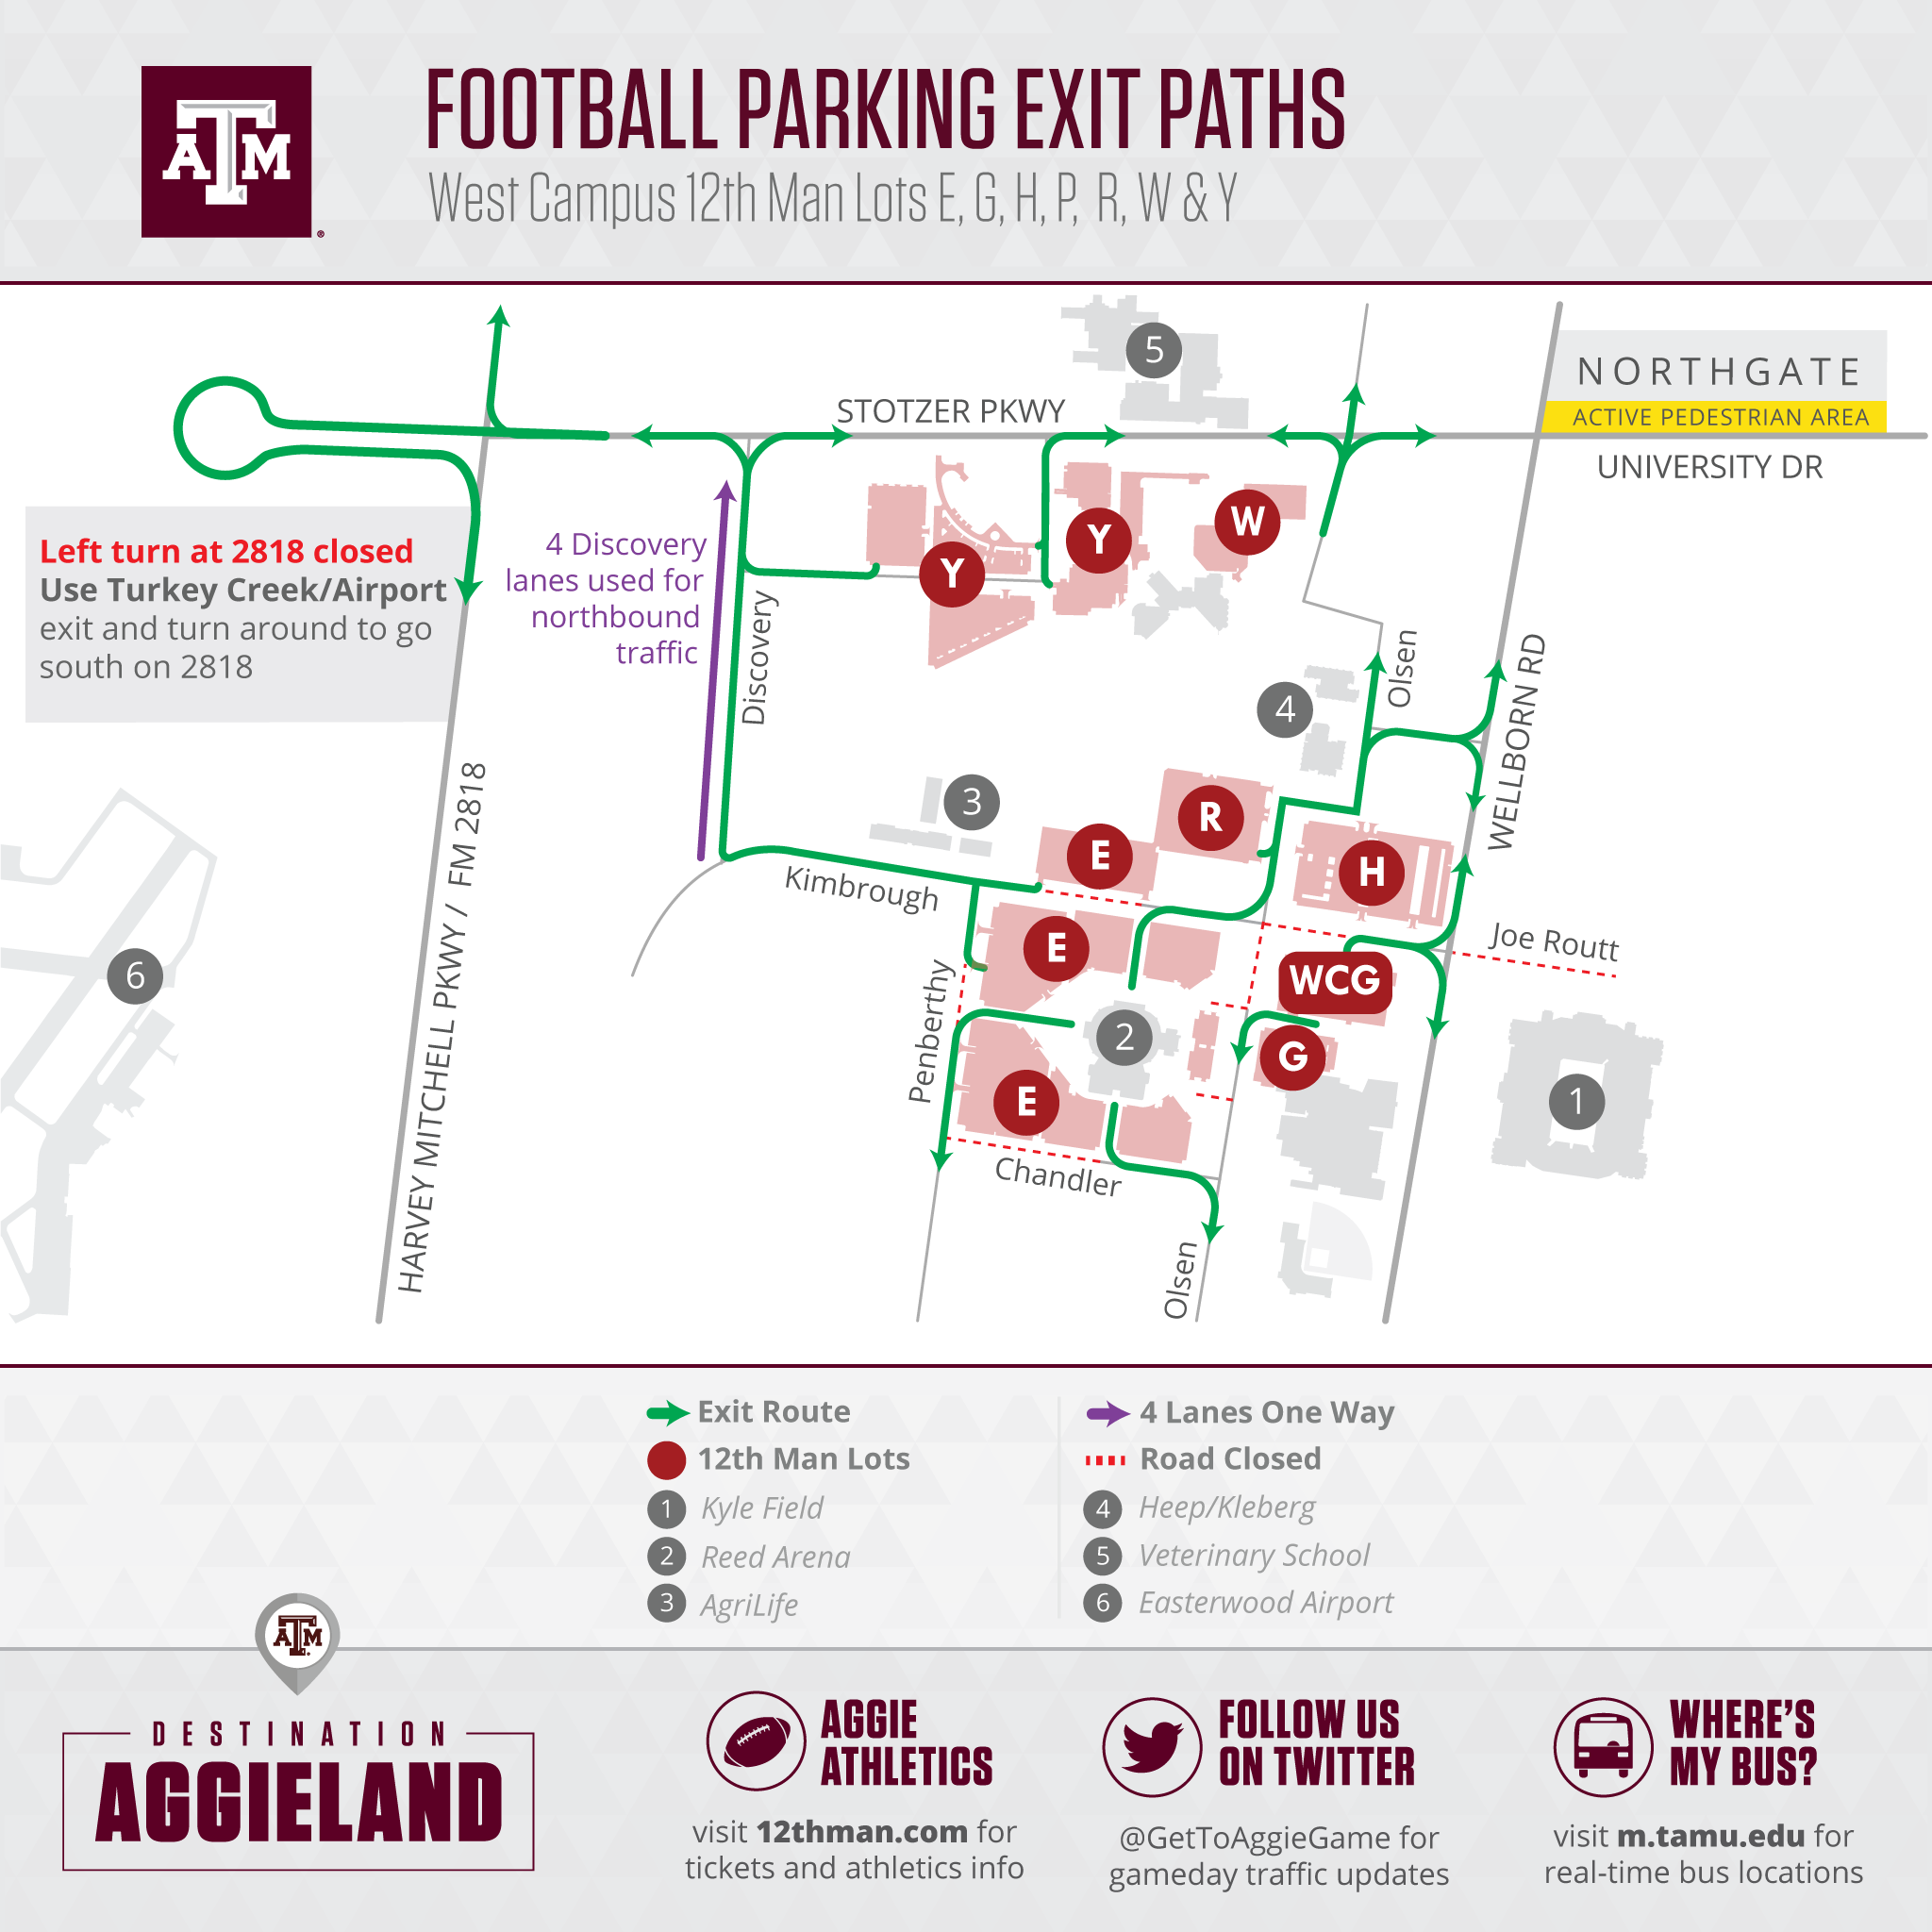 West Campus 12th Man Lots Map